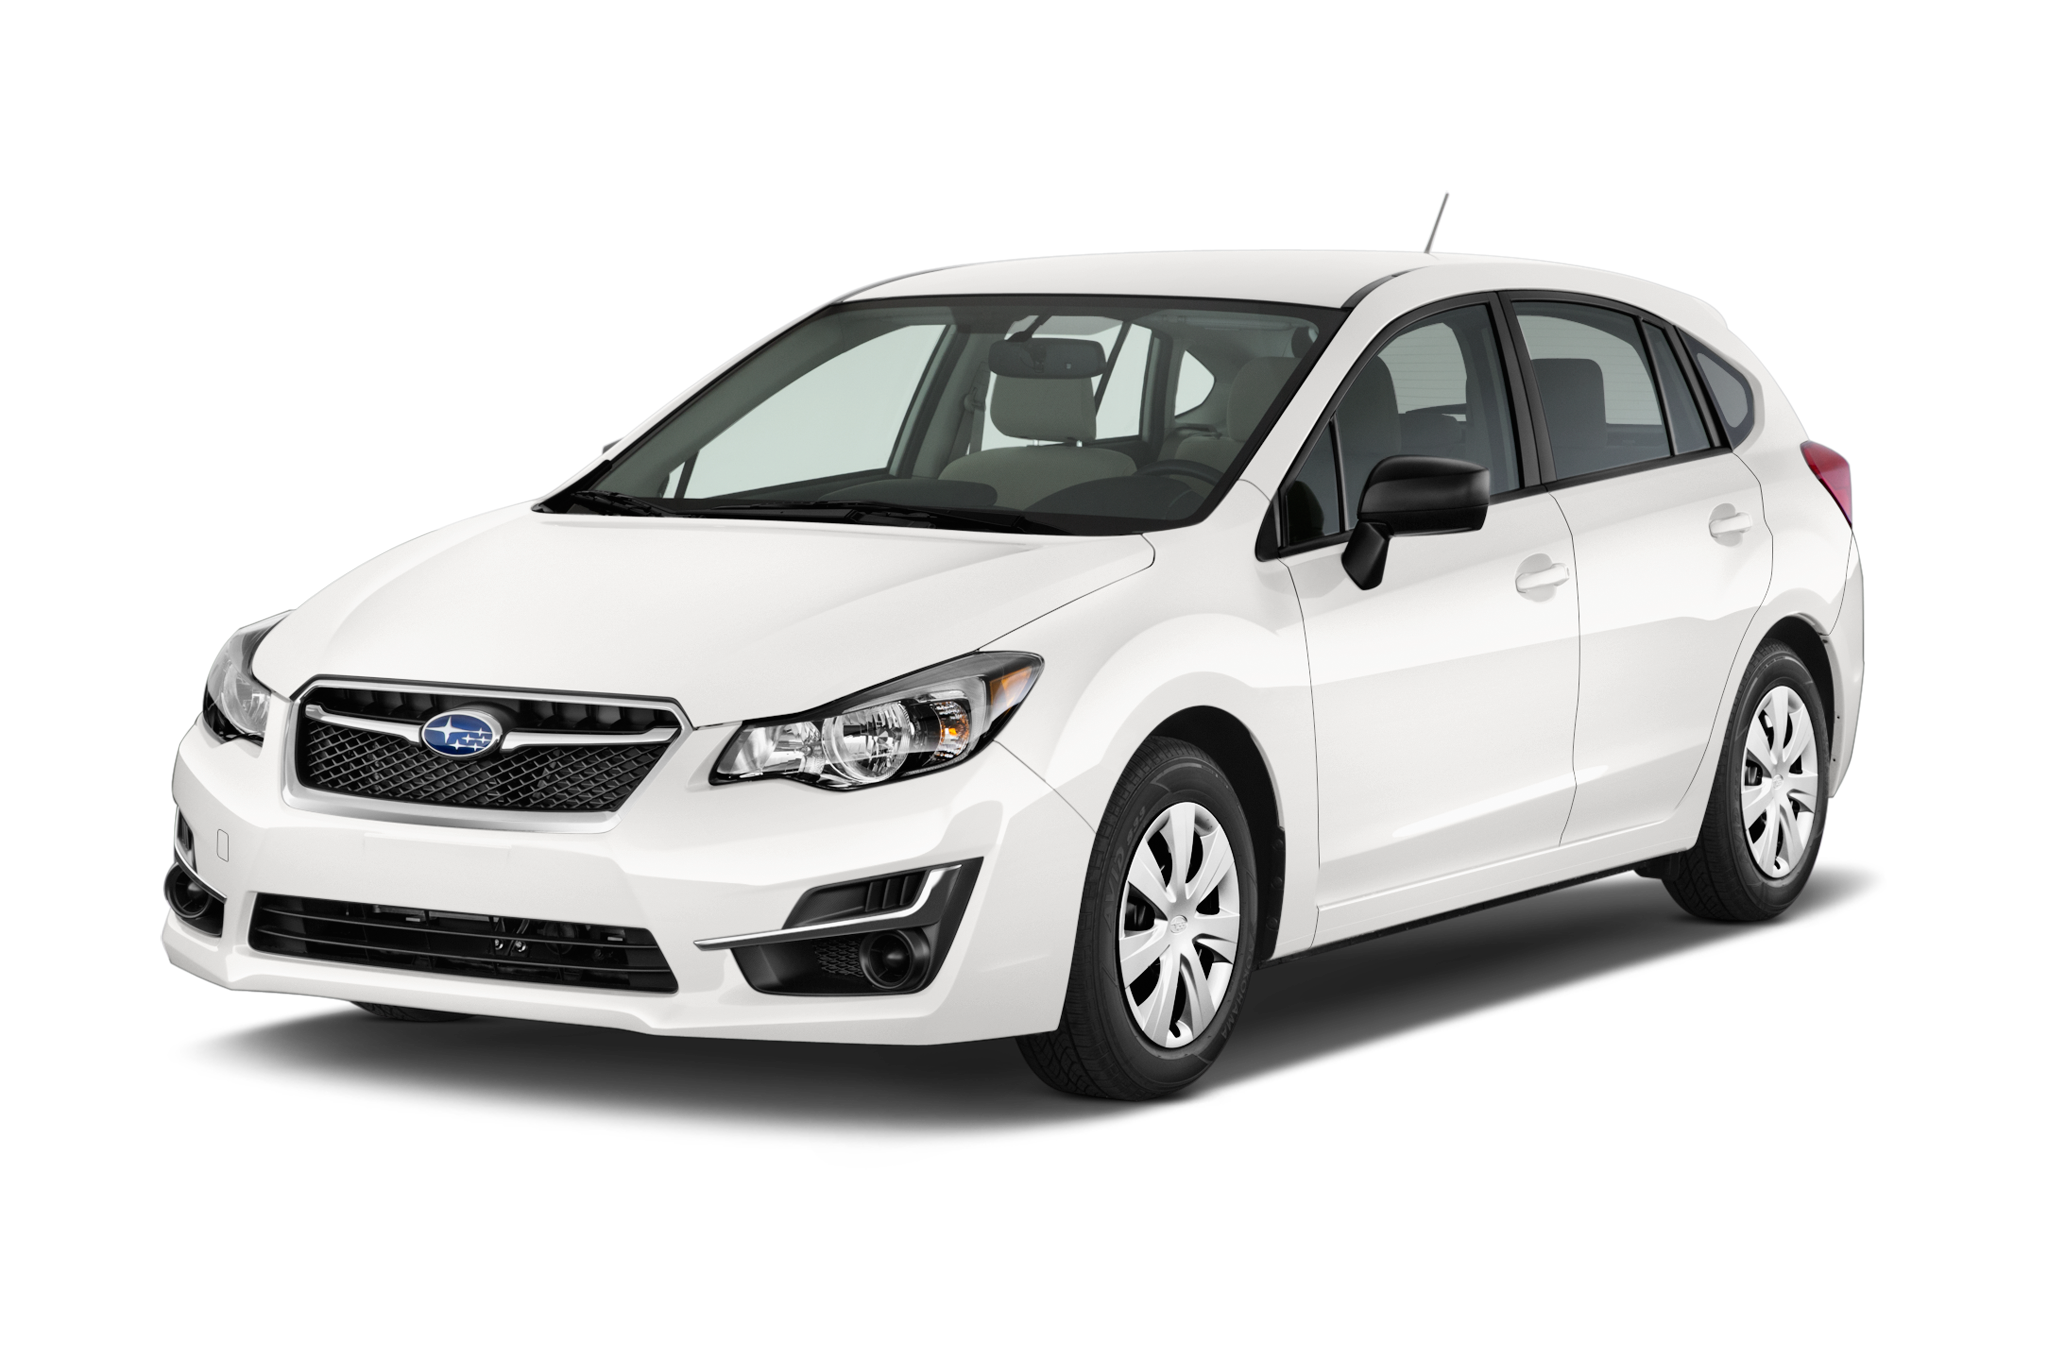 2015 subaru impreza sport limited review. Black Bedroom Furniture Sets. Home Design Ideas